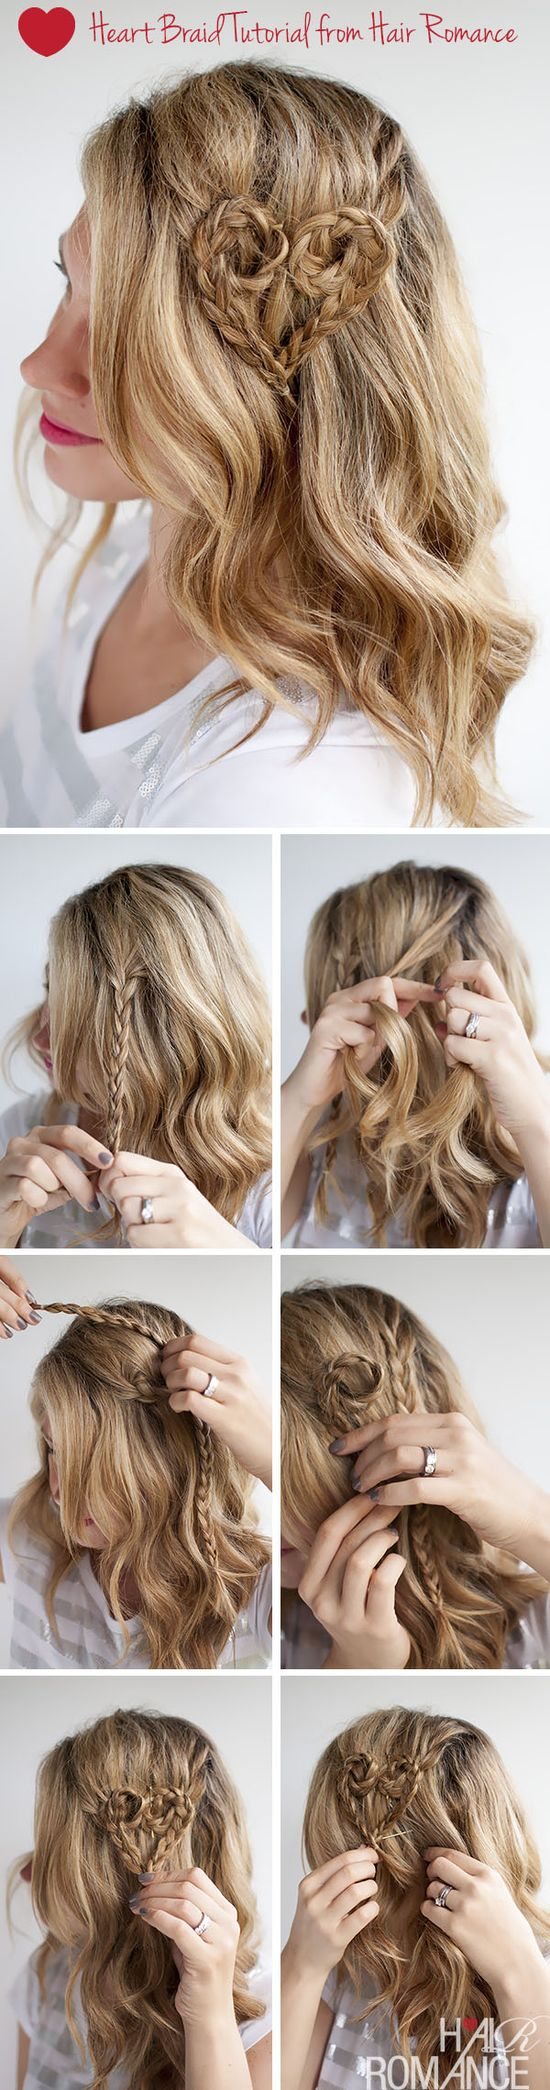 Festival Hairstyles: Cute & Practical Looks - Daily Beat